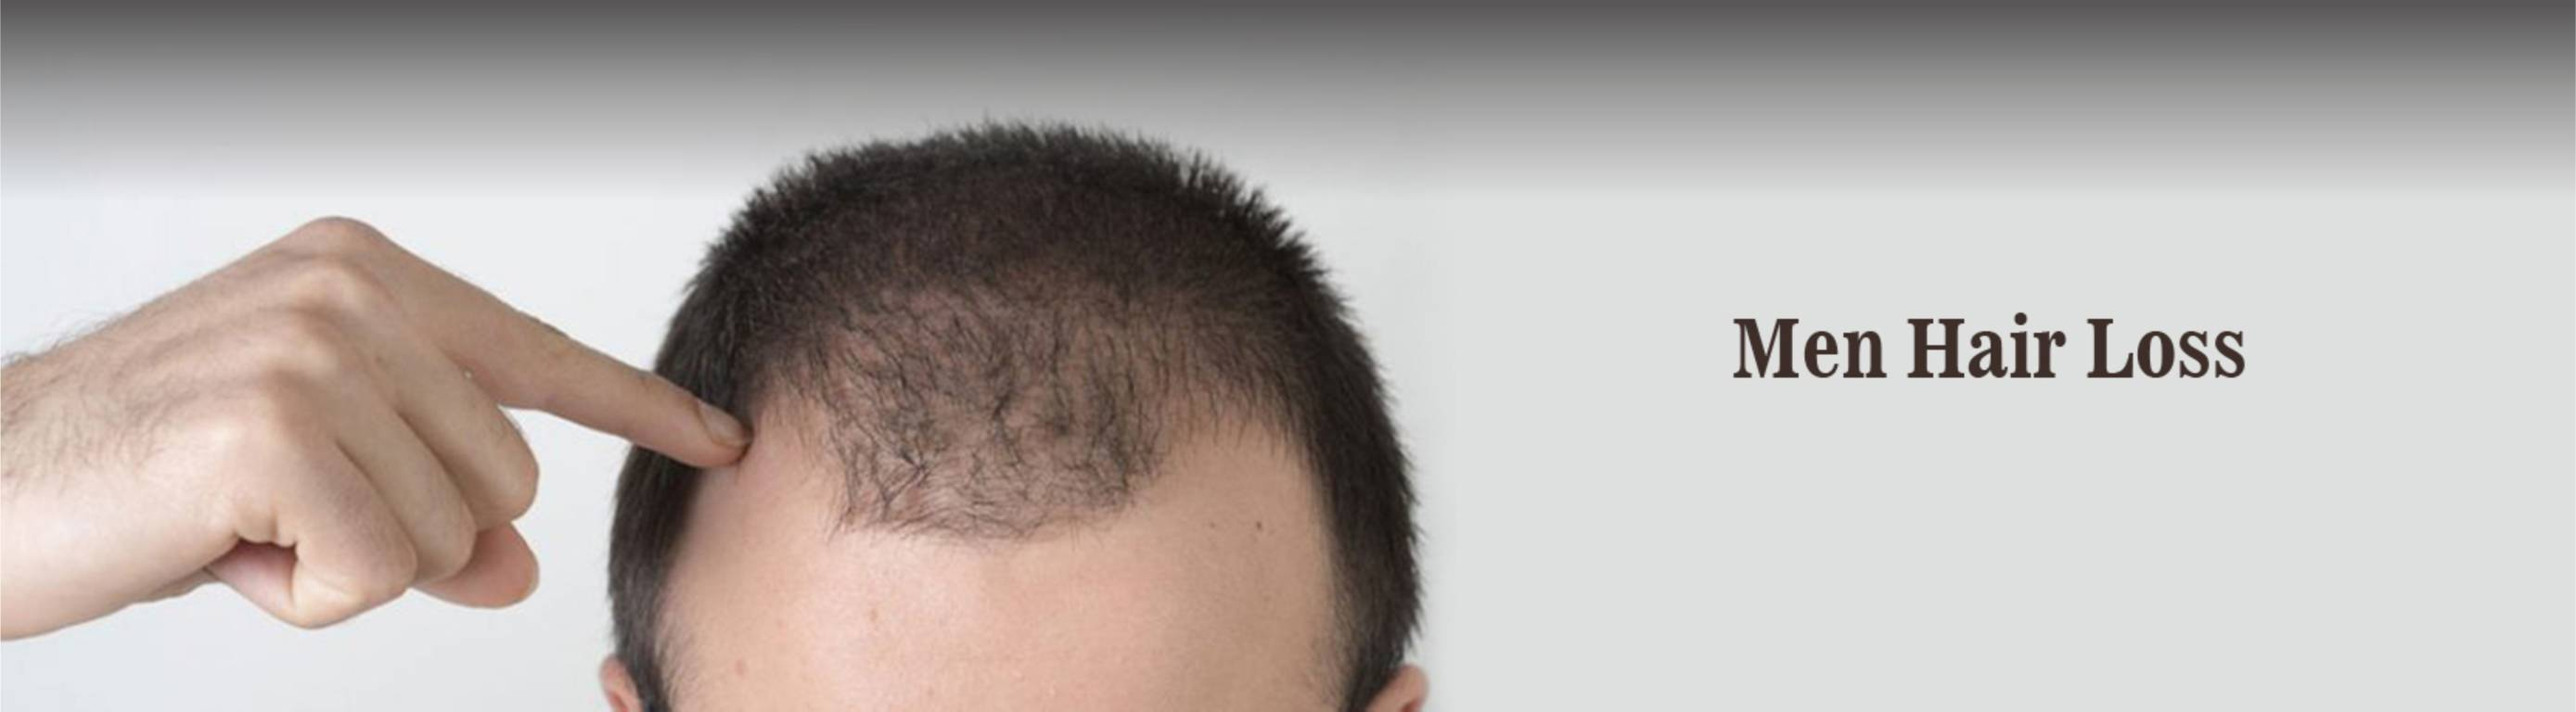 Latest In Hair Loss Treatment done at Dezire Clinic Pune